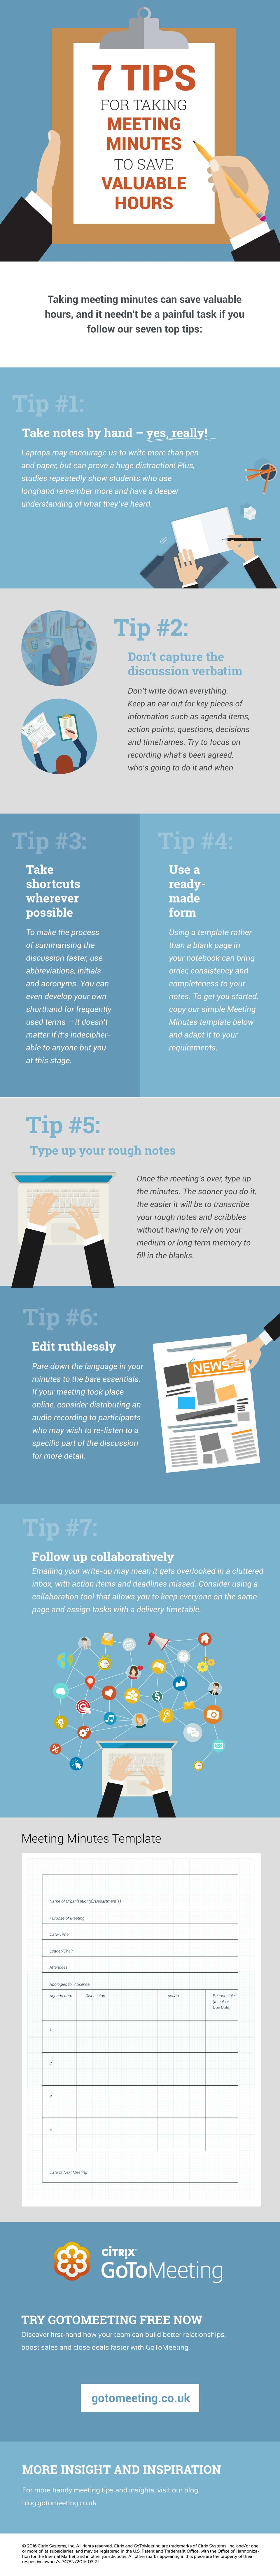 Infographic - How to take effective meeting minutes